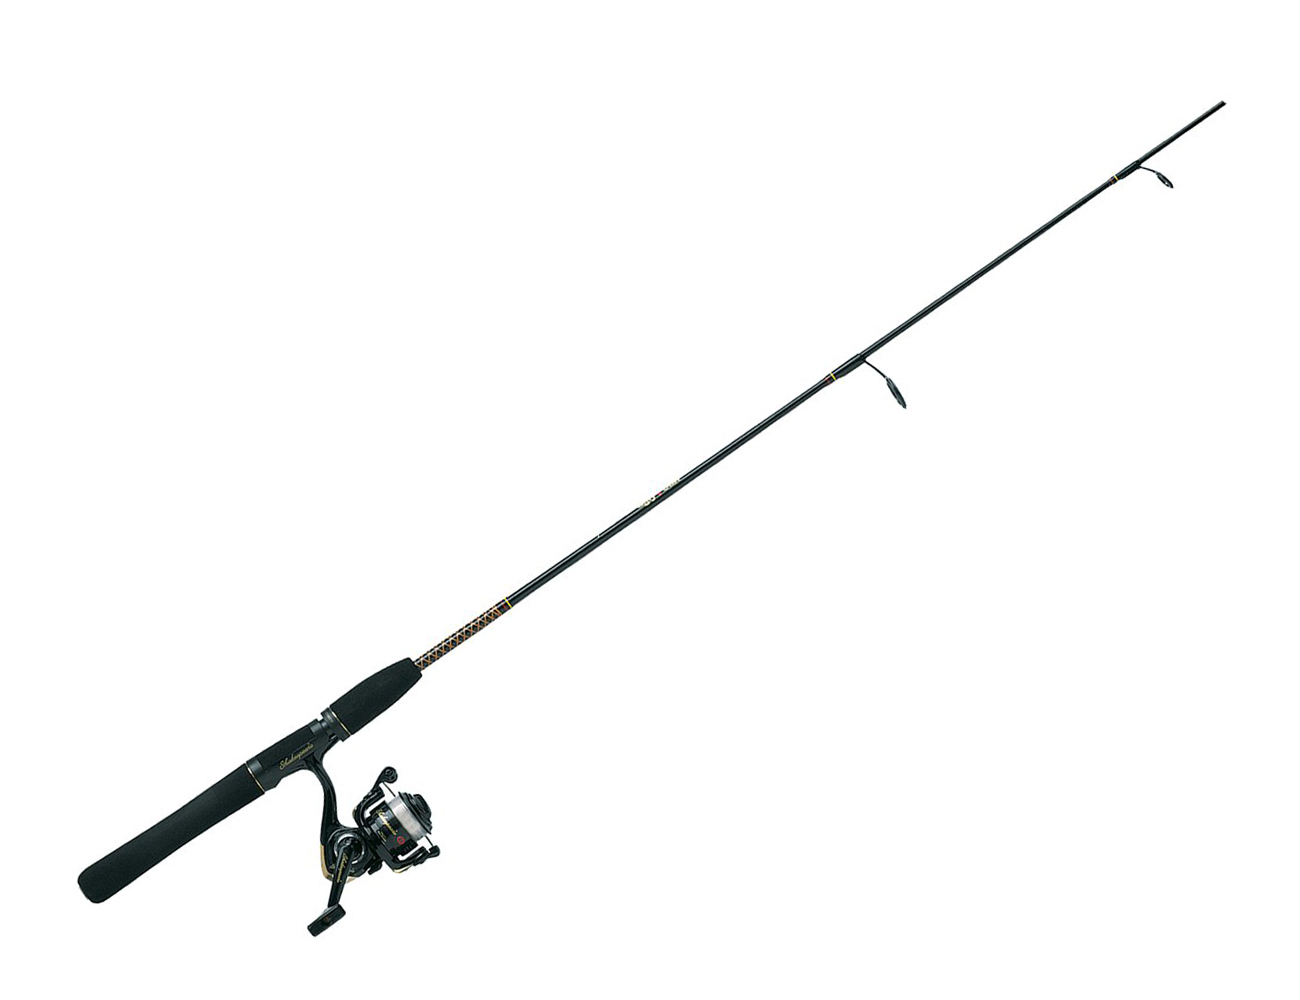 Fishing Pole Clipart - Clipart Suggest